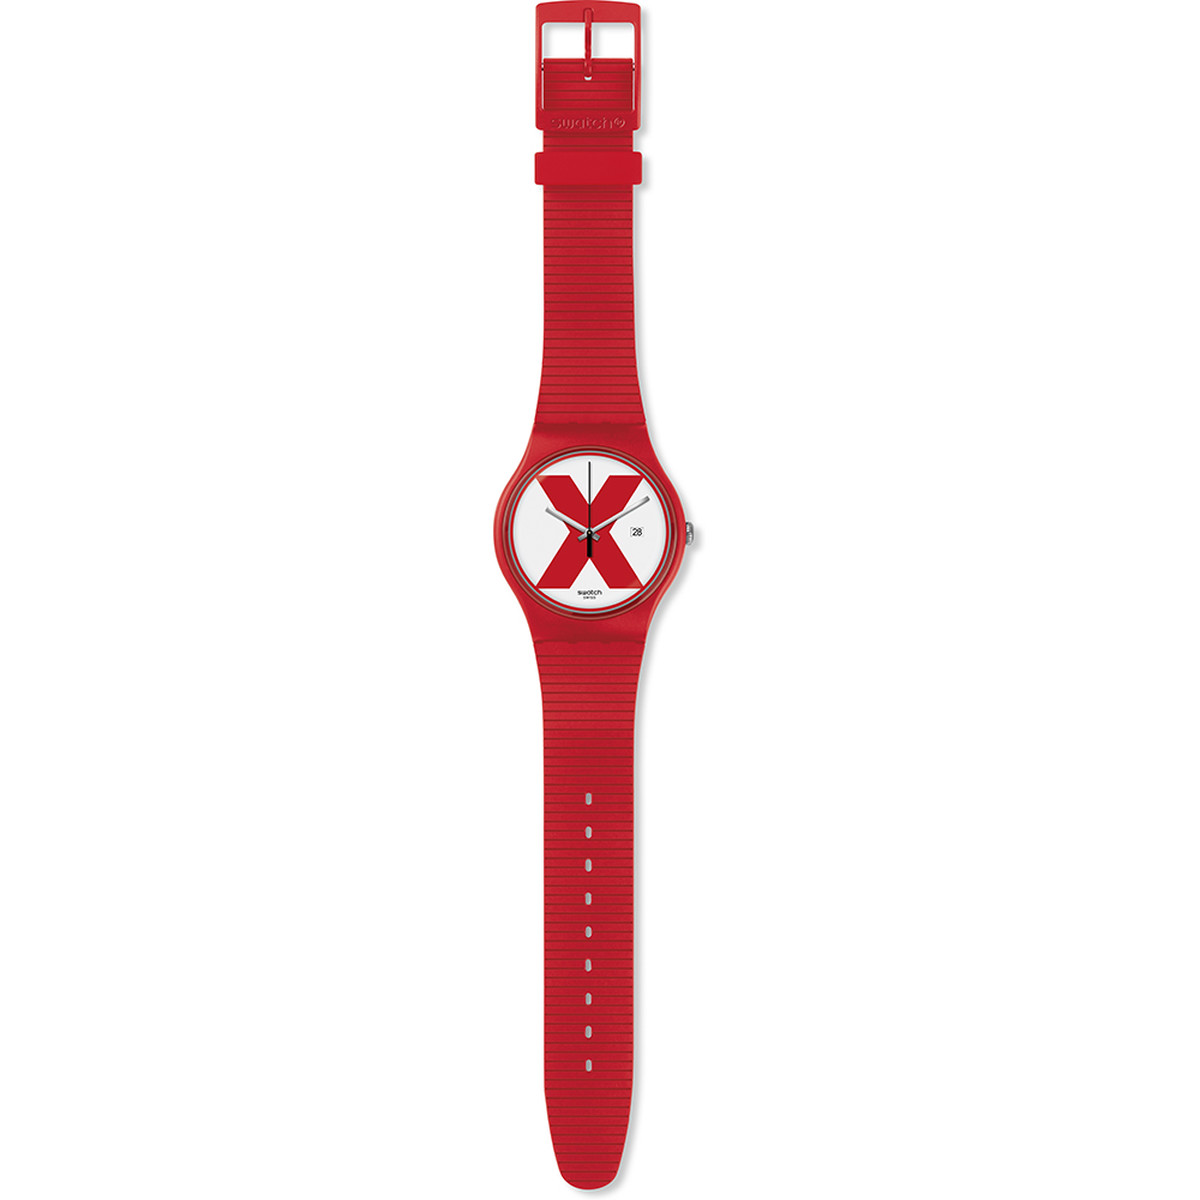 Montre Swatch XX rated red mixte plastique rouge - vue D1